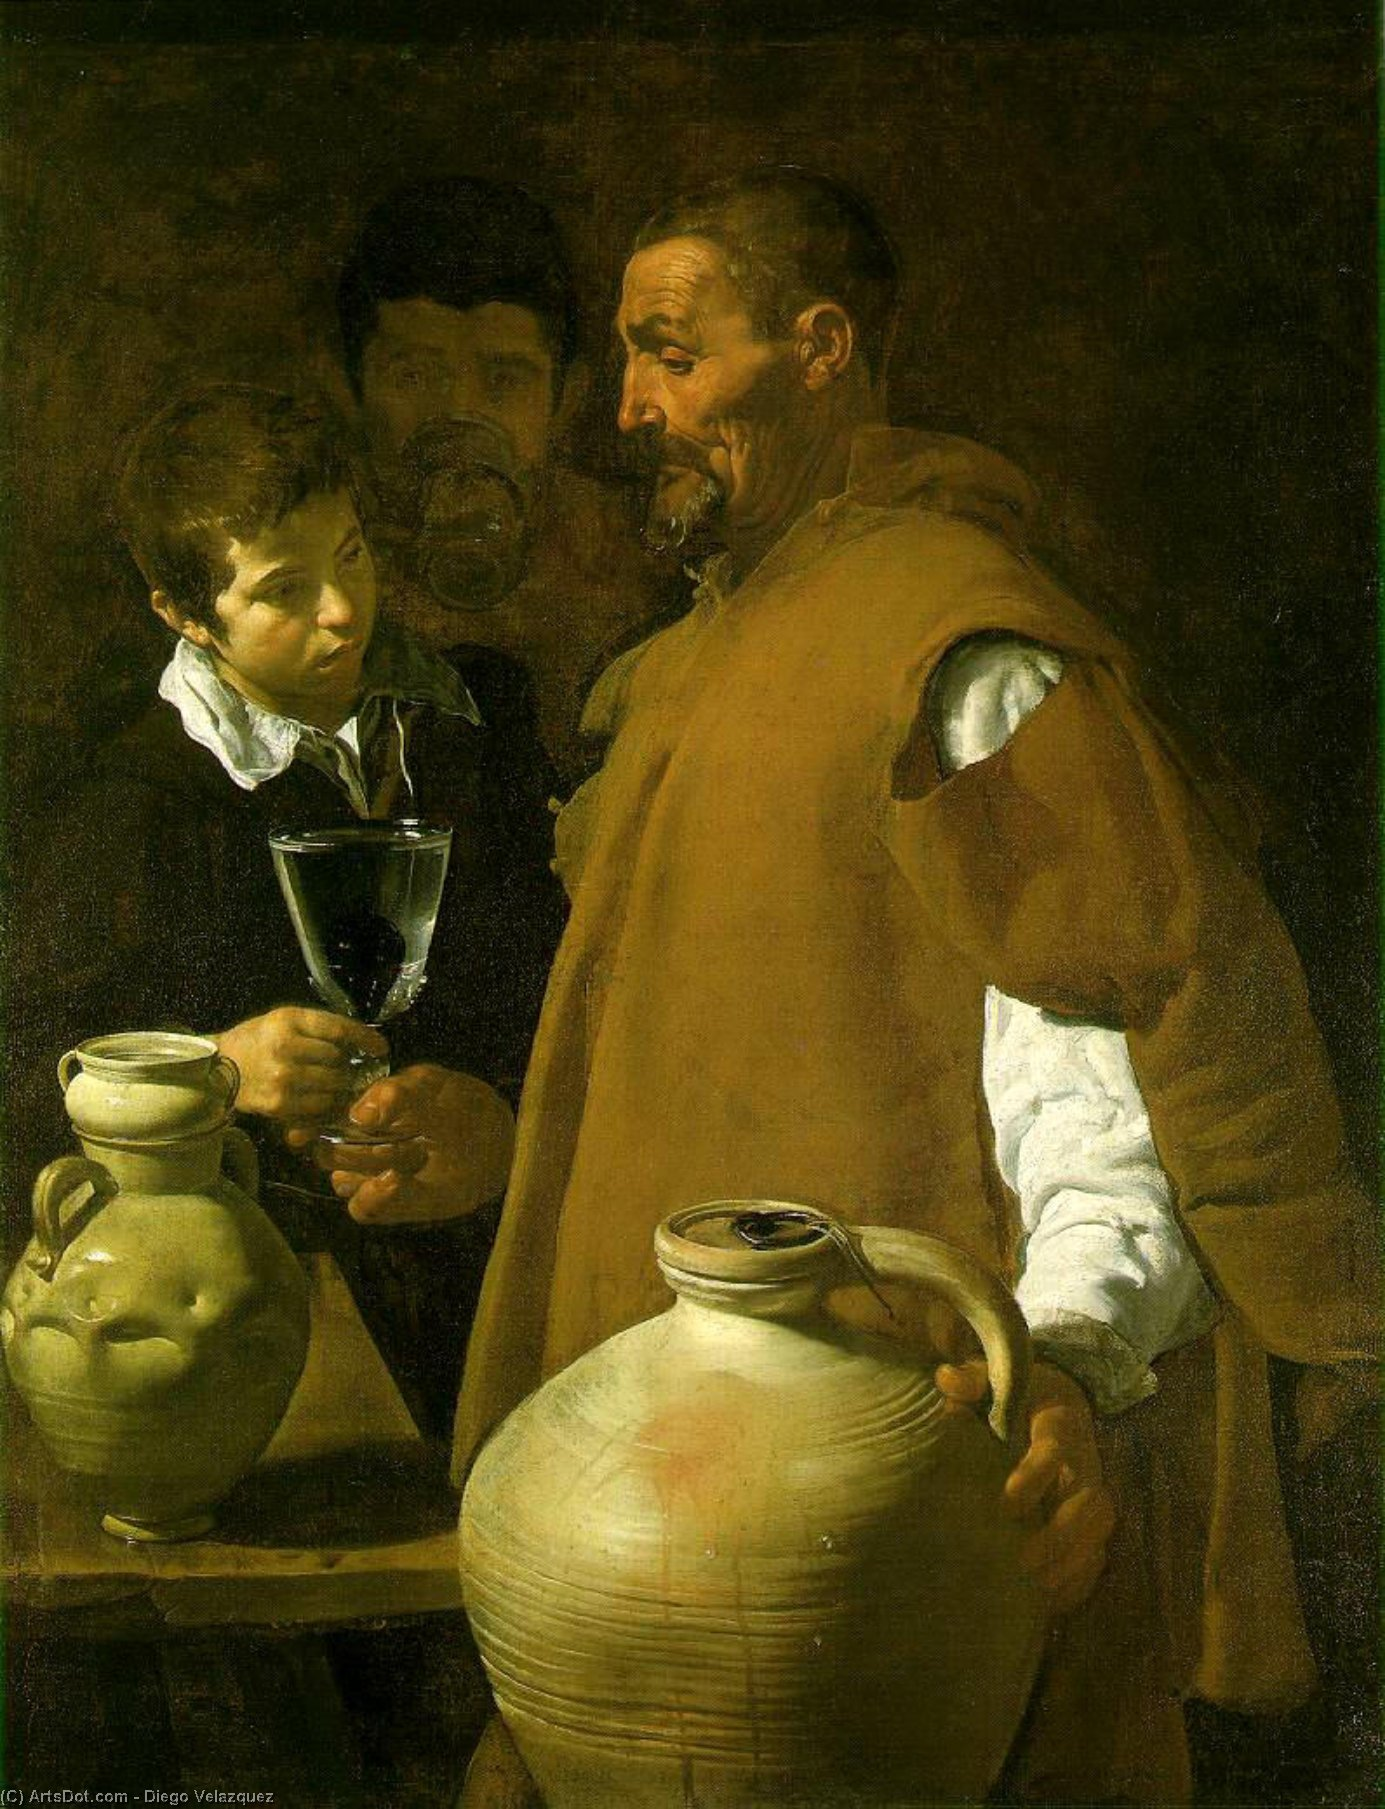 Waterseller seville by Diego Velazquez (1599-1660, Spain)